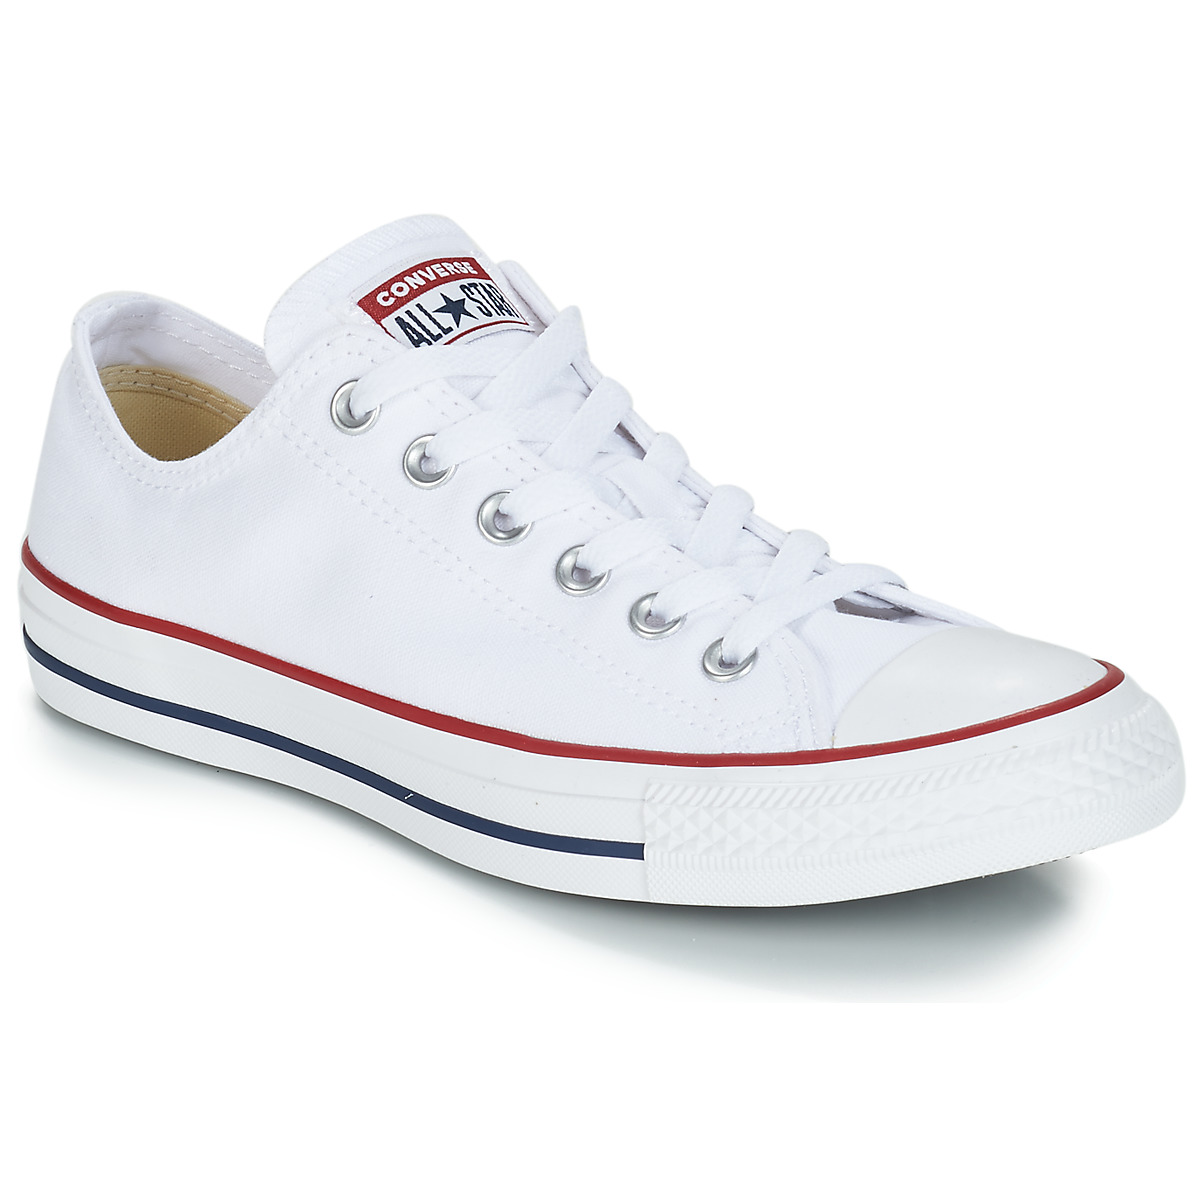 converse chuck taylor all star core ox blanc optical livraison gratuite avec. Black Bedroom Furniture Sets. Home Design Ideas